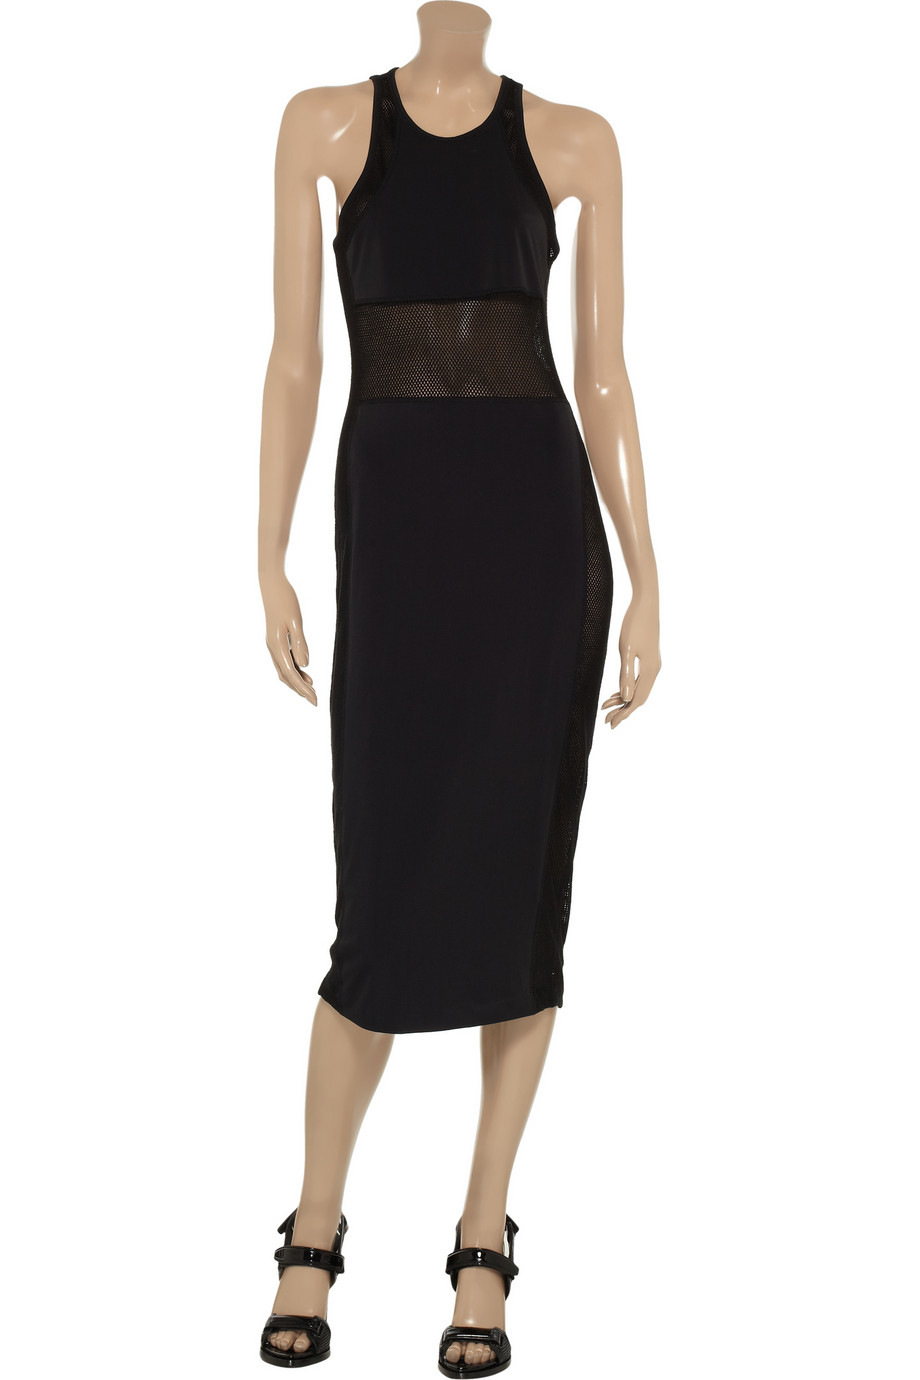 T by Alexander Wang Paneled stretch-nylon and mesh midi dress – 76% at THE OUTNET.COM